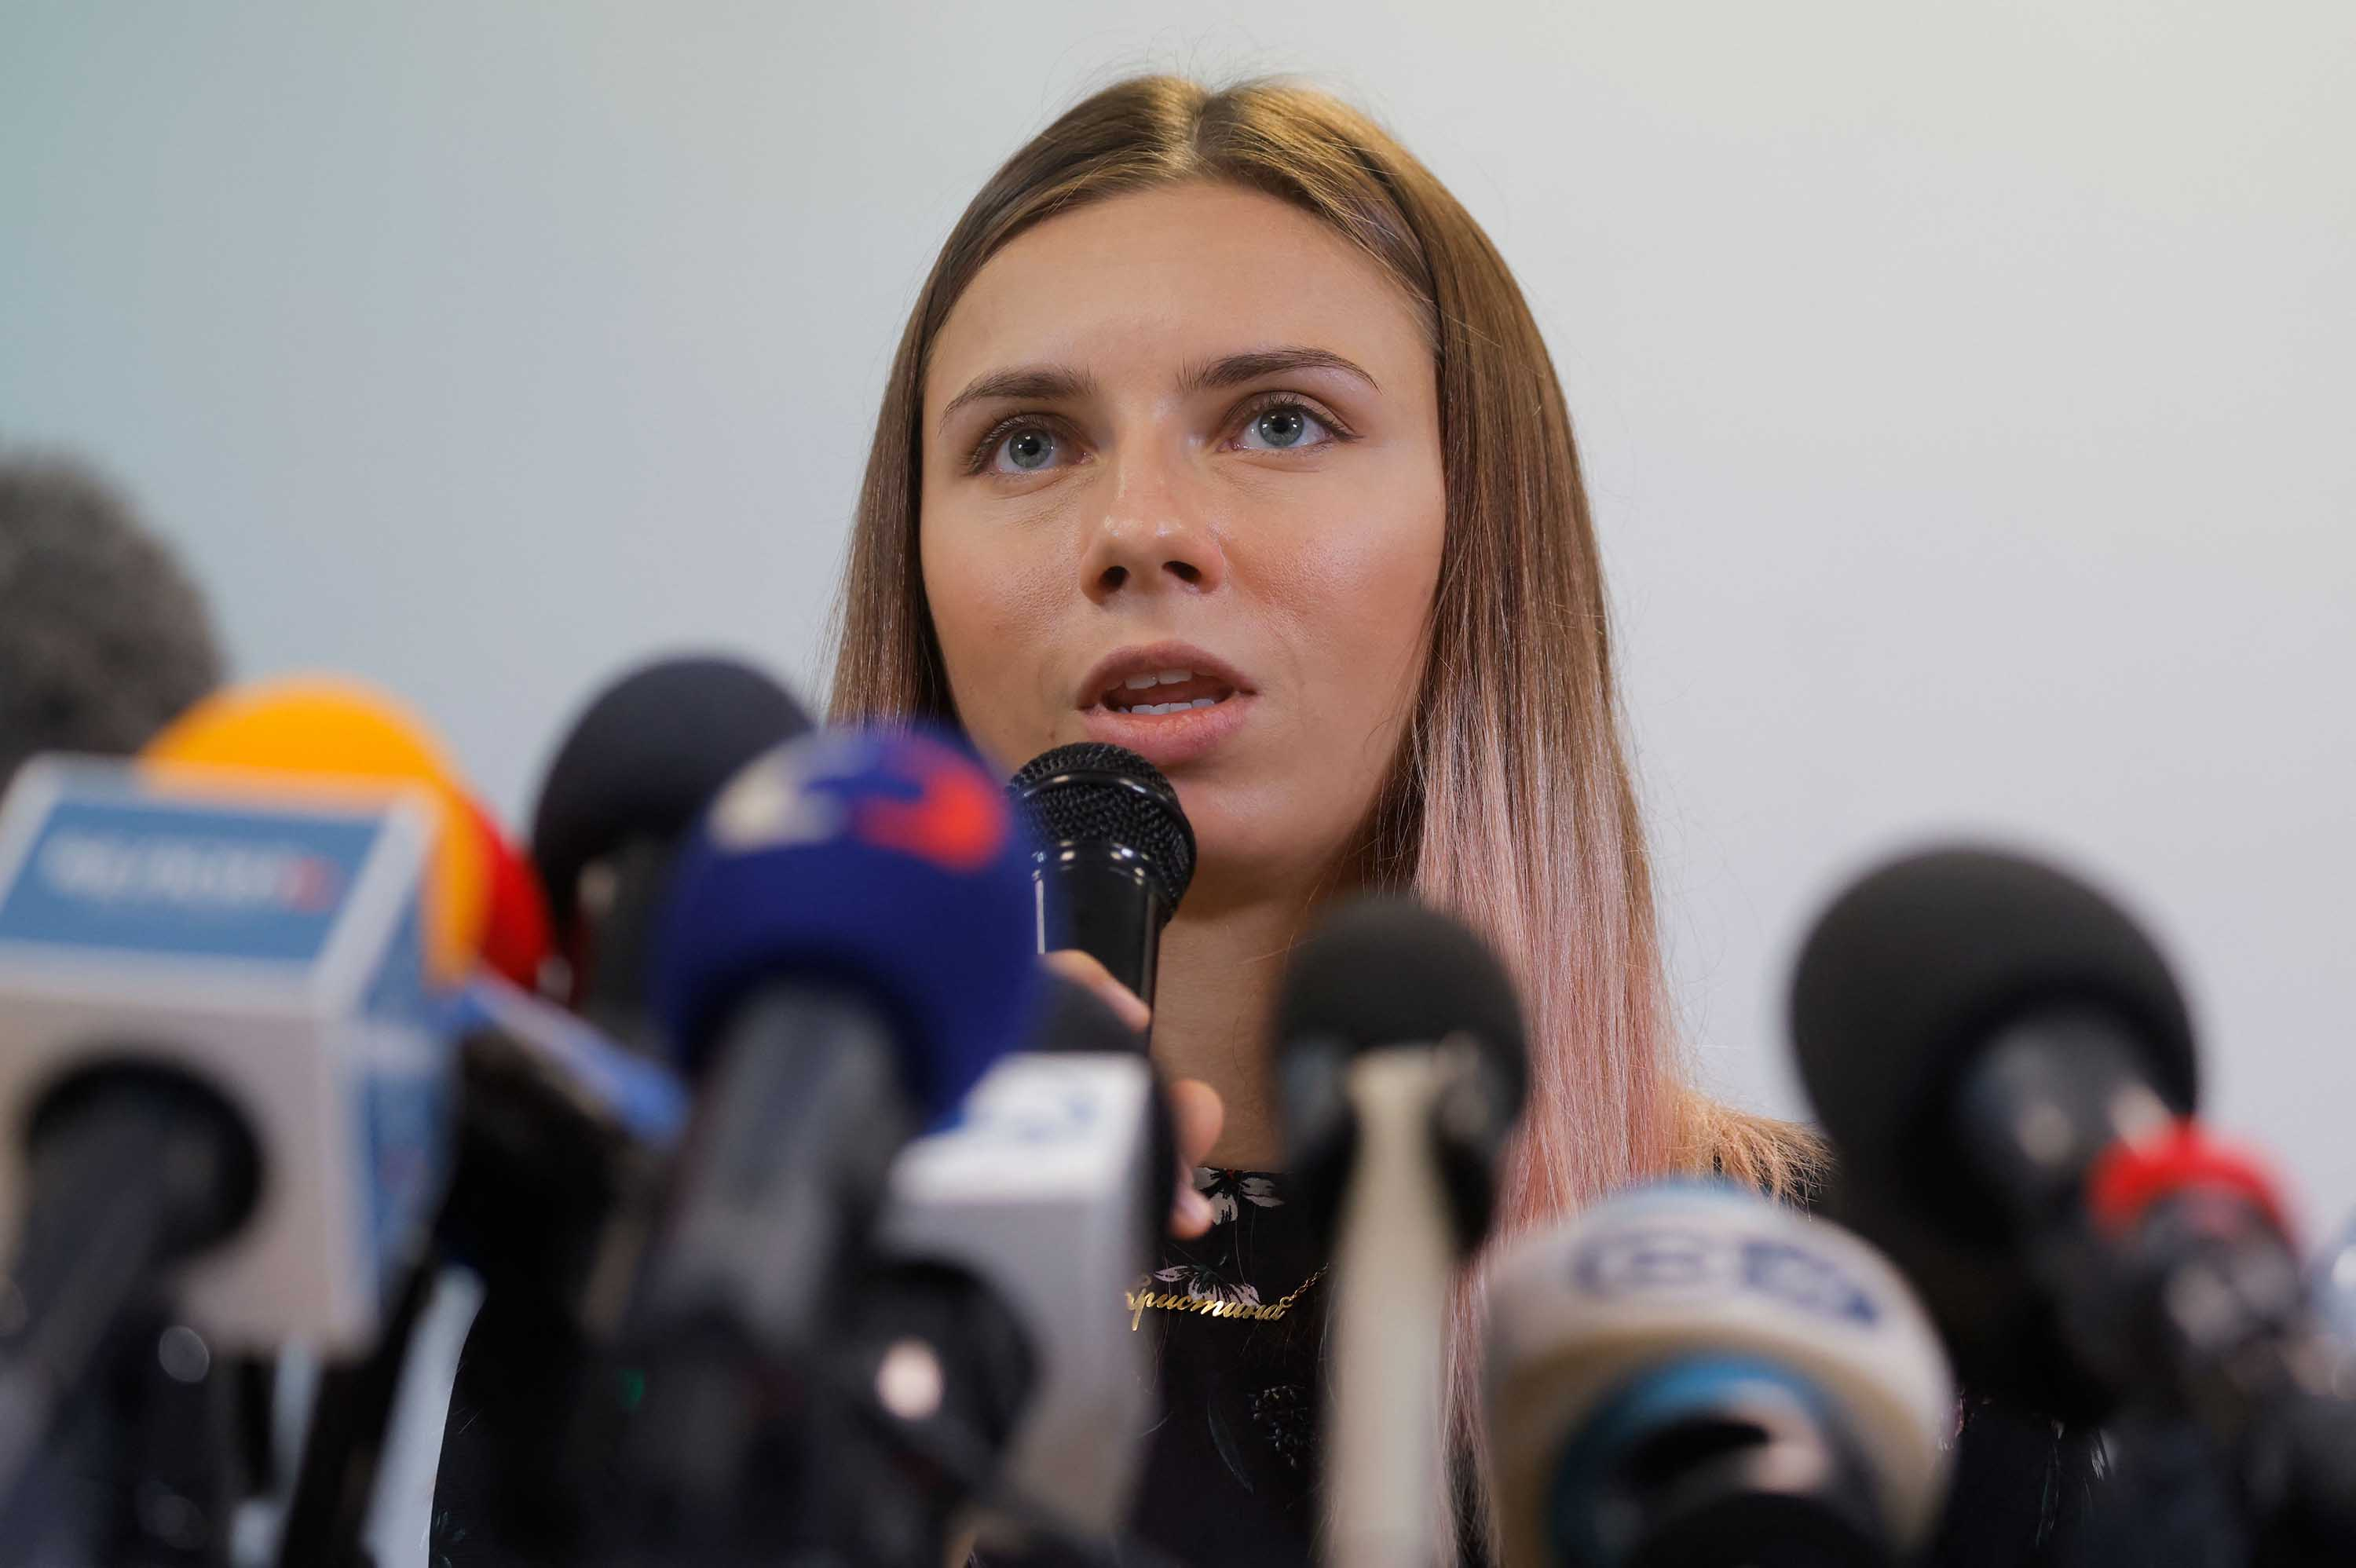 Belarusian Olympic athlete Kristina Timanovskaya addresses a press conference on August 5, in Warsaw, Poland.